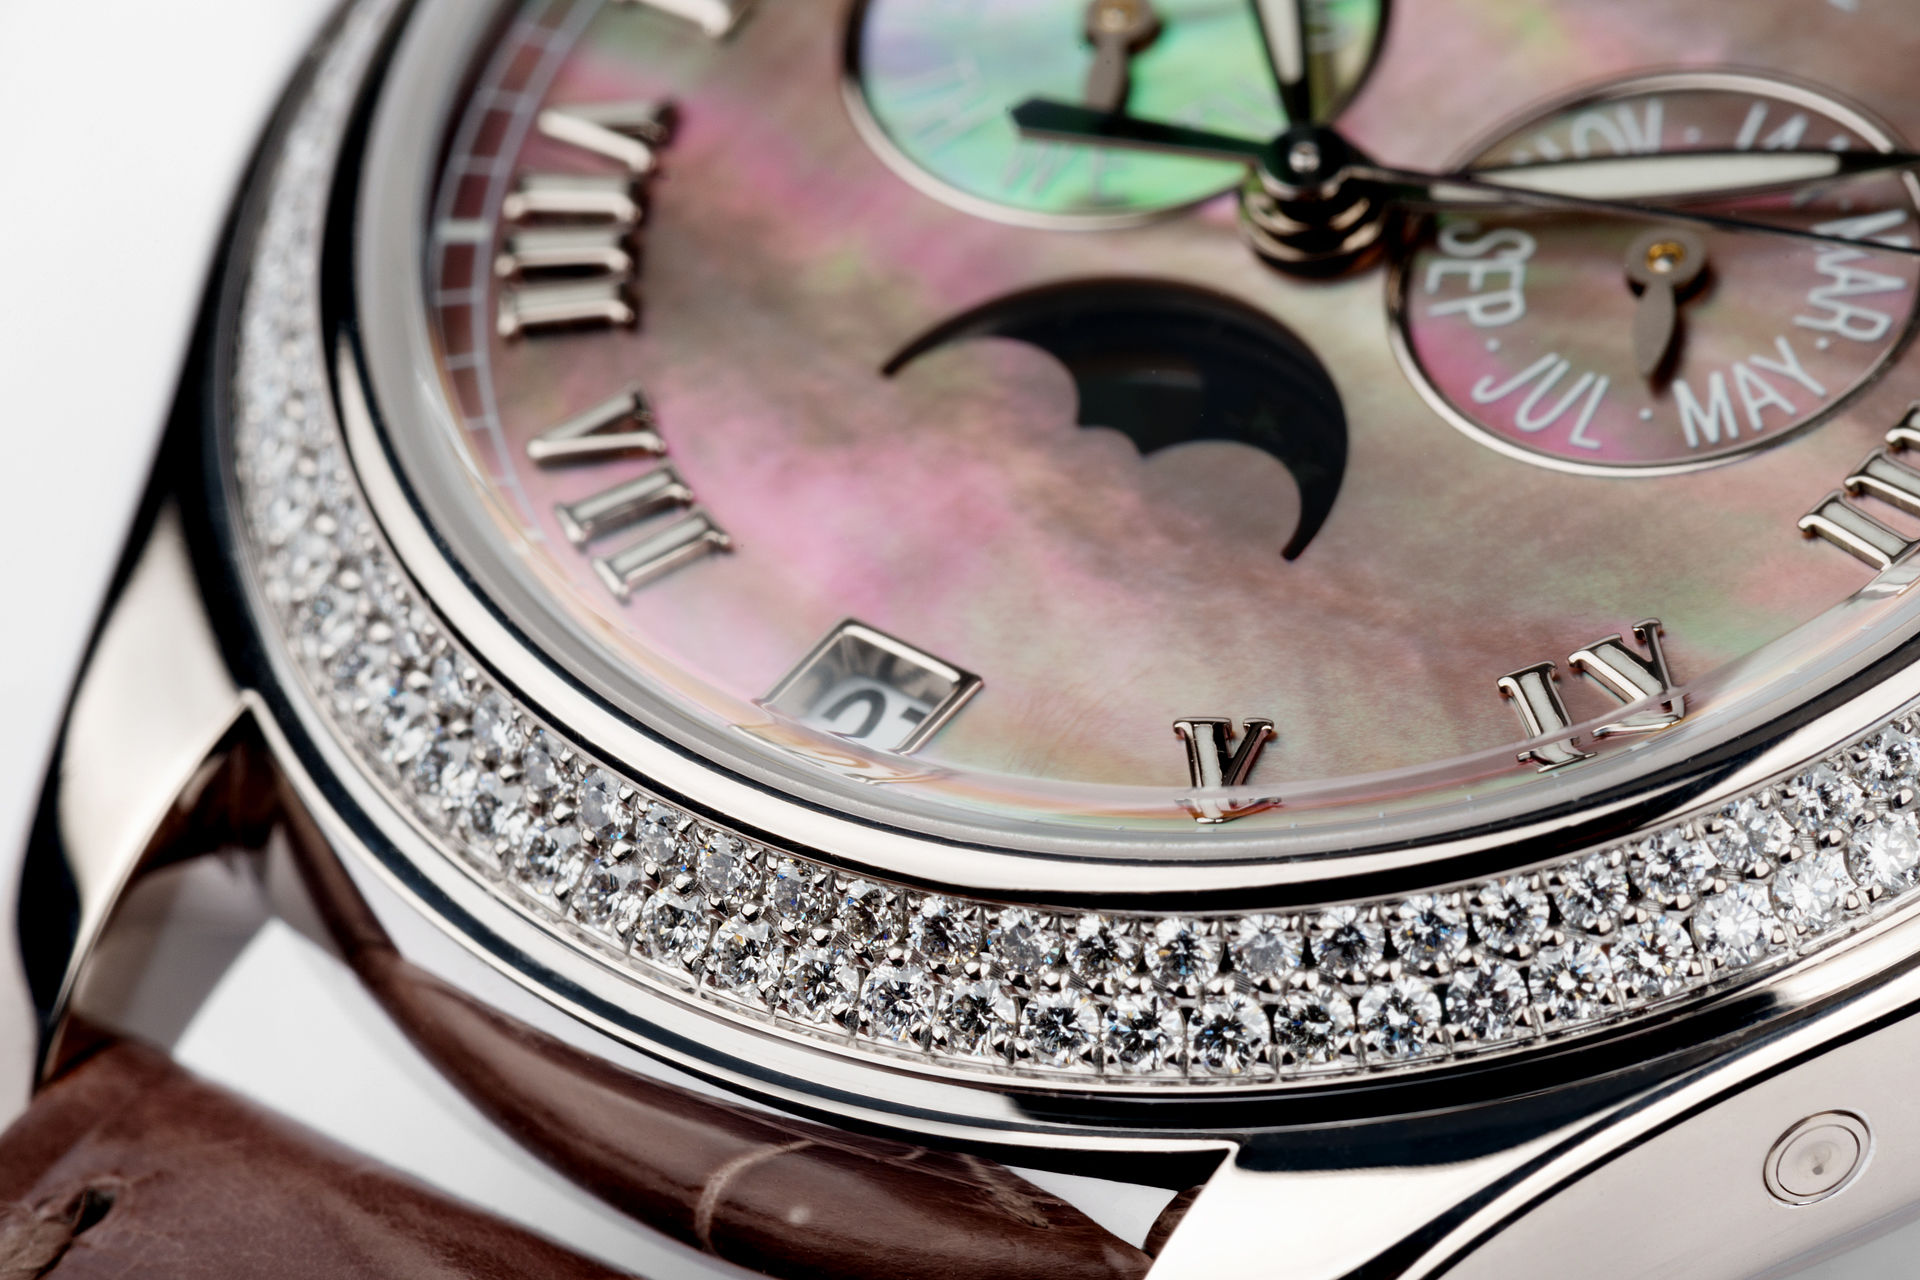 ref 4936G-001 | Mother of Pearl 'Full Set' | Patek Philippe Annual Calendar